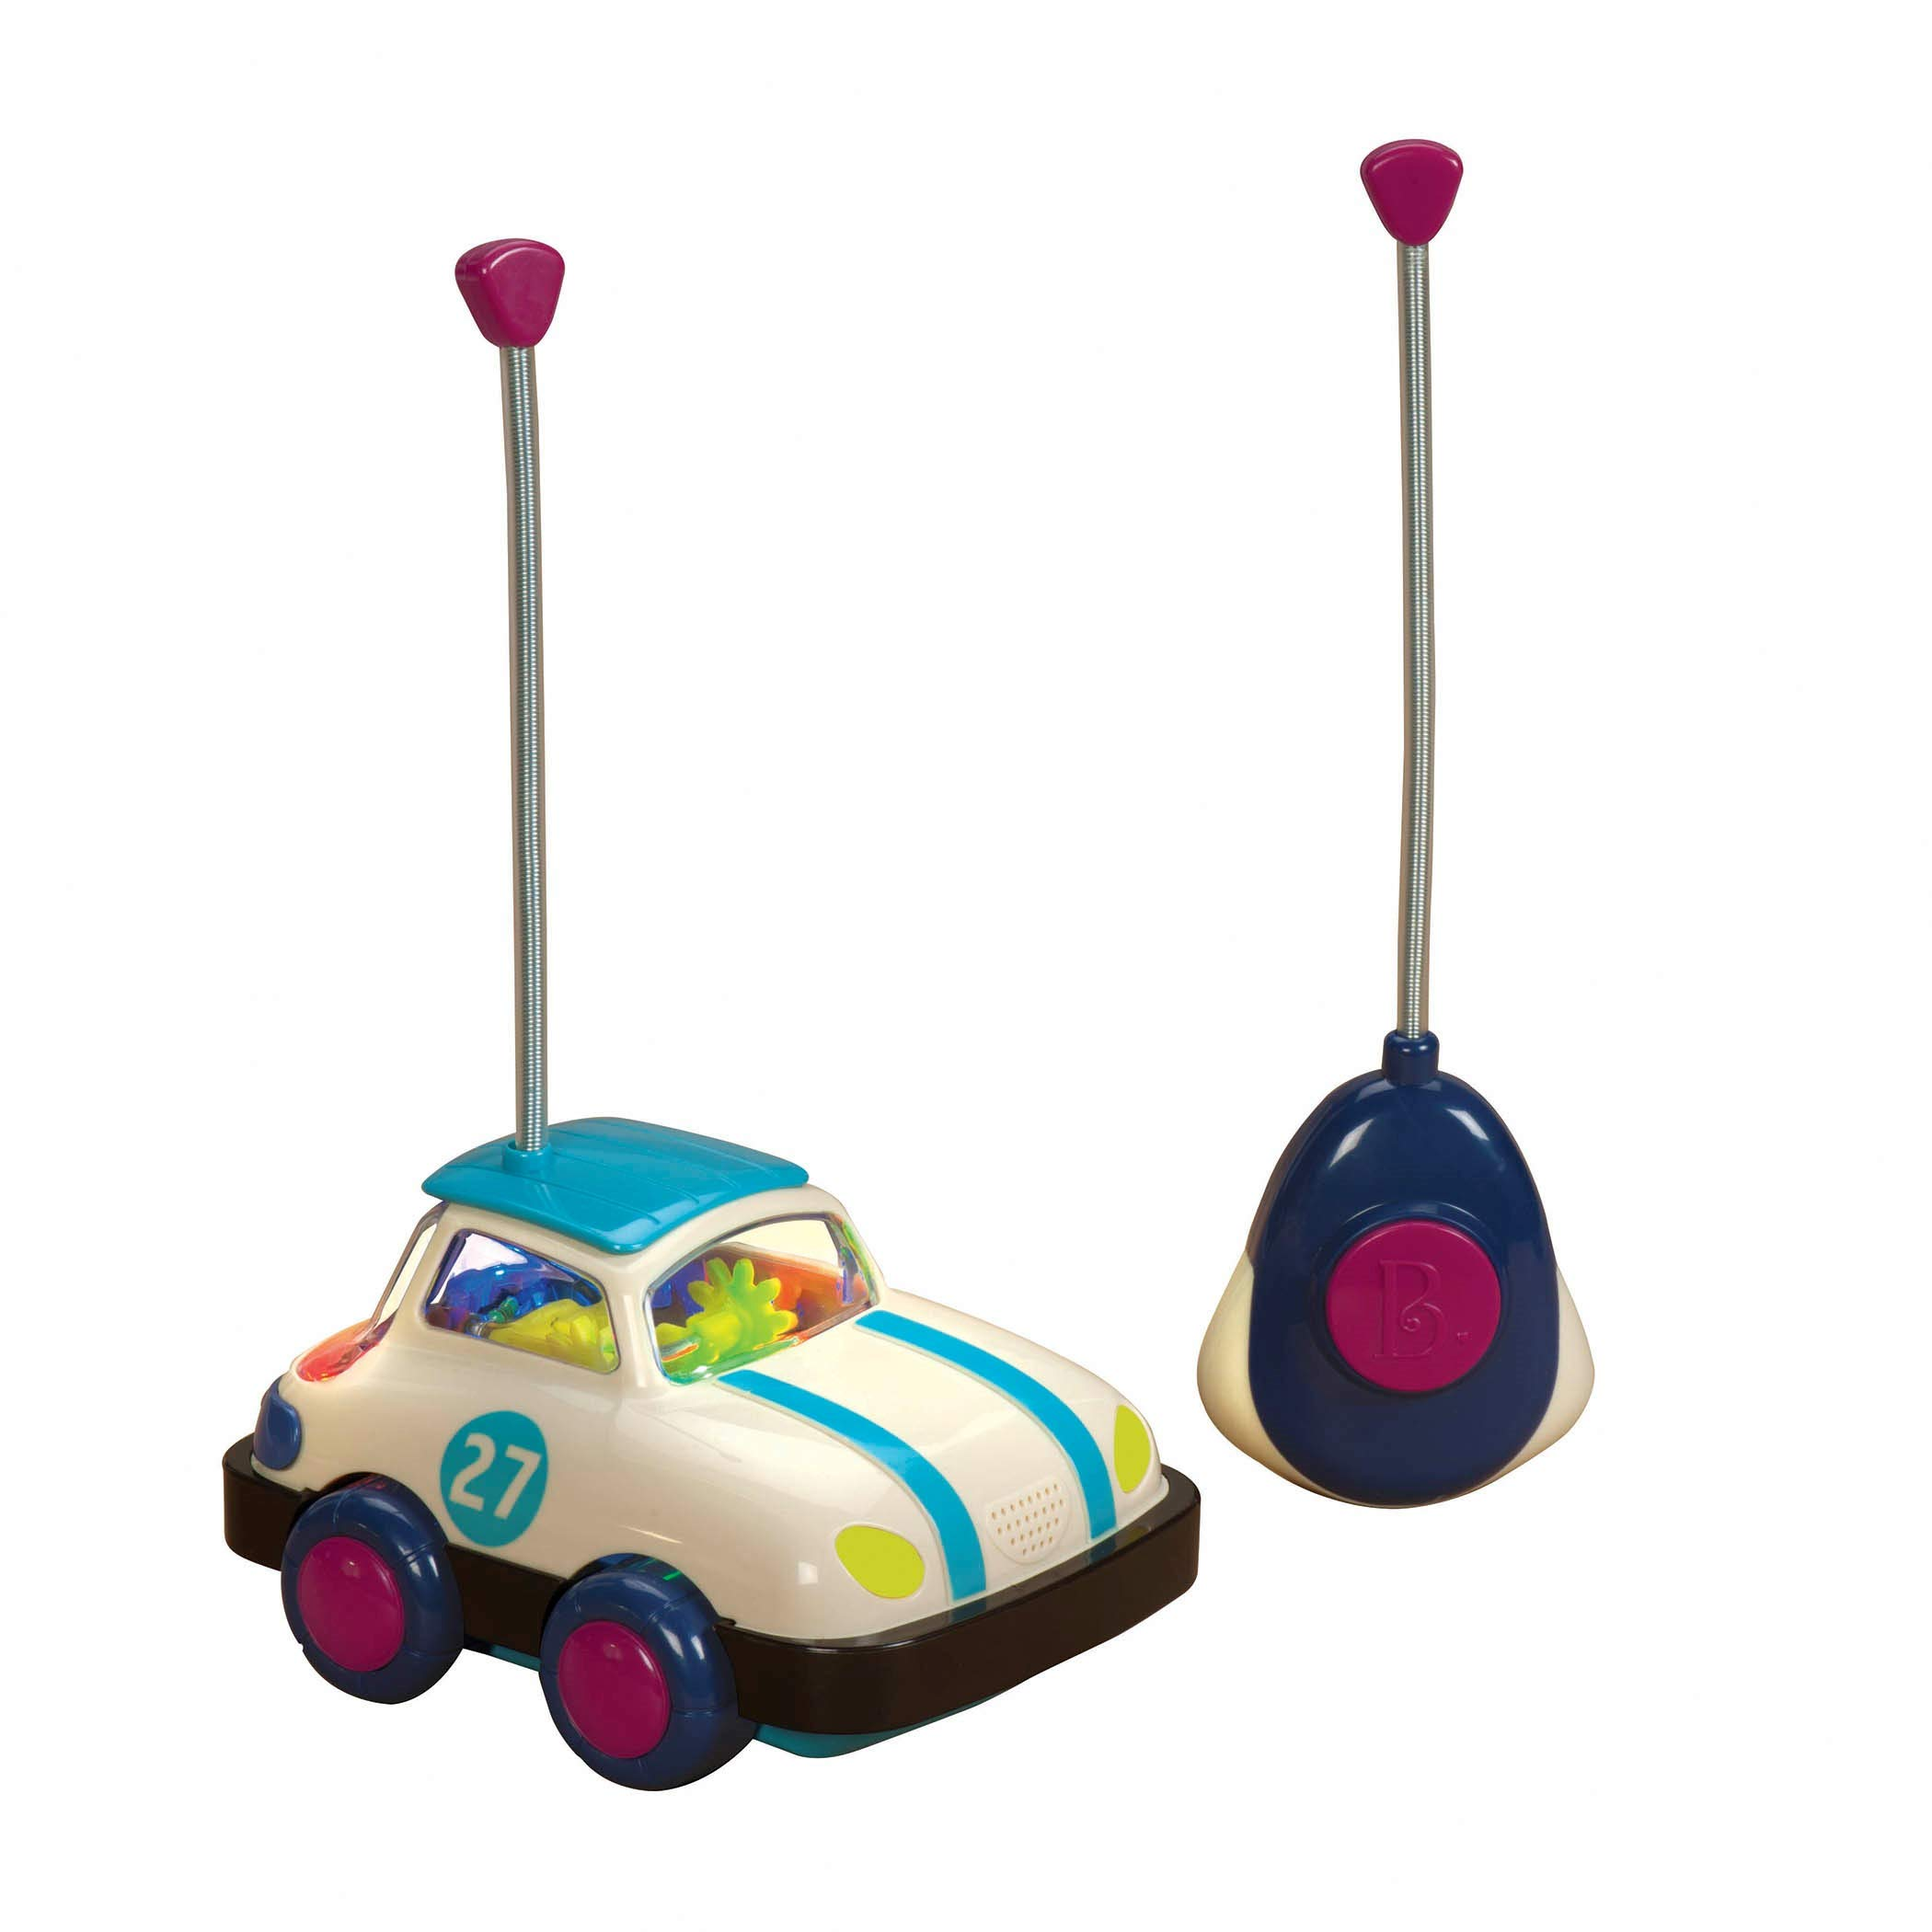 B. toys – Rally Ripster – One Button Remote Control Light-Up Toy Car for Babies & Toddlers 1 Year +